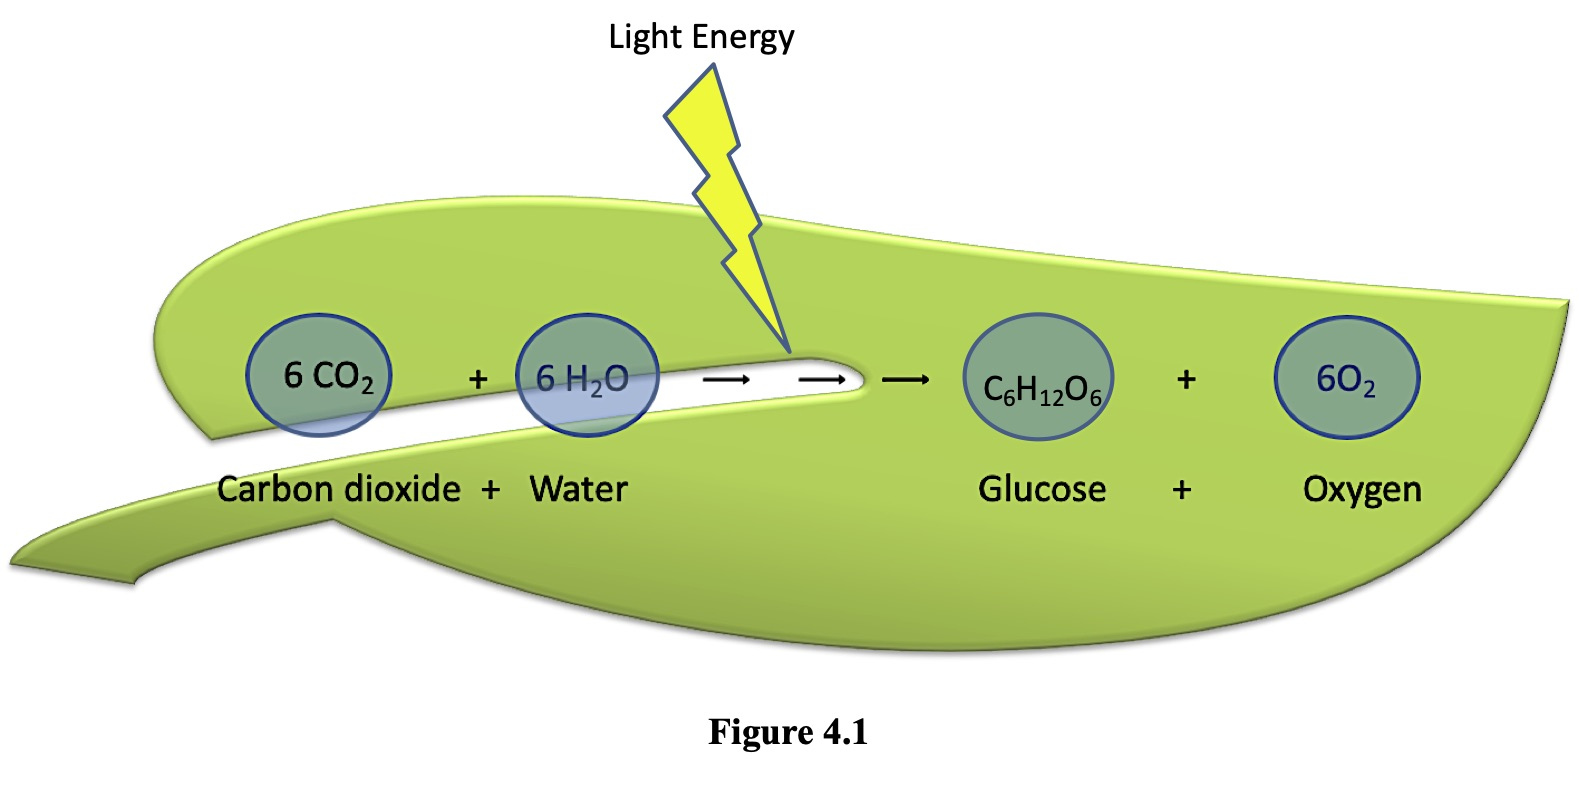 Figure 4.1 shows the overall reaction for photosynthesis in a plant leaf. The green pigments in the plant leaf capture light energy from the sun and combine 6 carbon dioxide from air with 6 water molecules to produce a glucose molecule and 6 oxygen molecules. The oxygen molecules are released into the air.